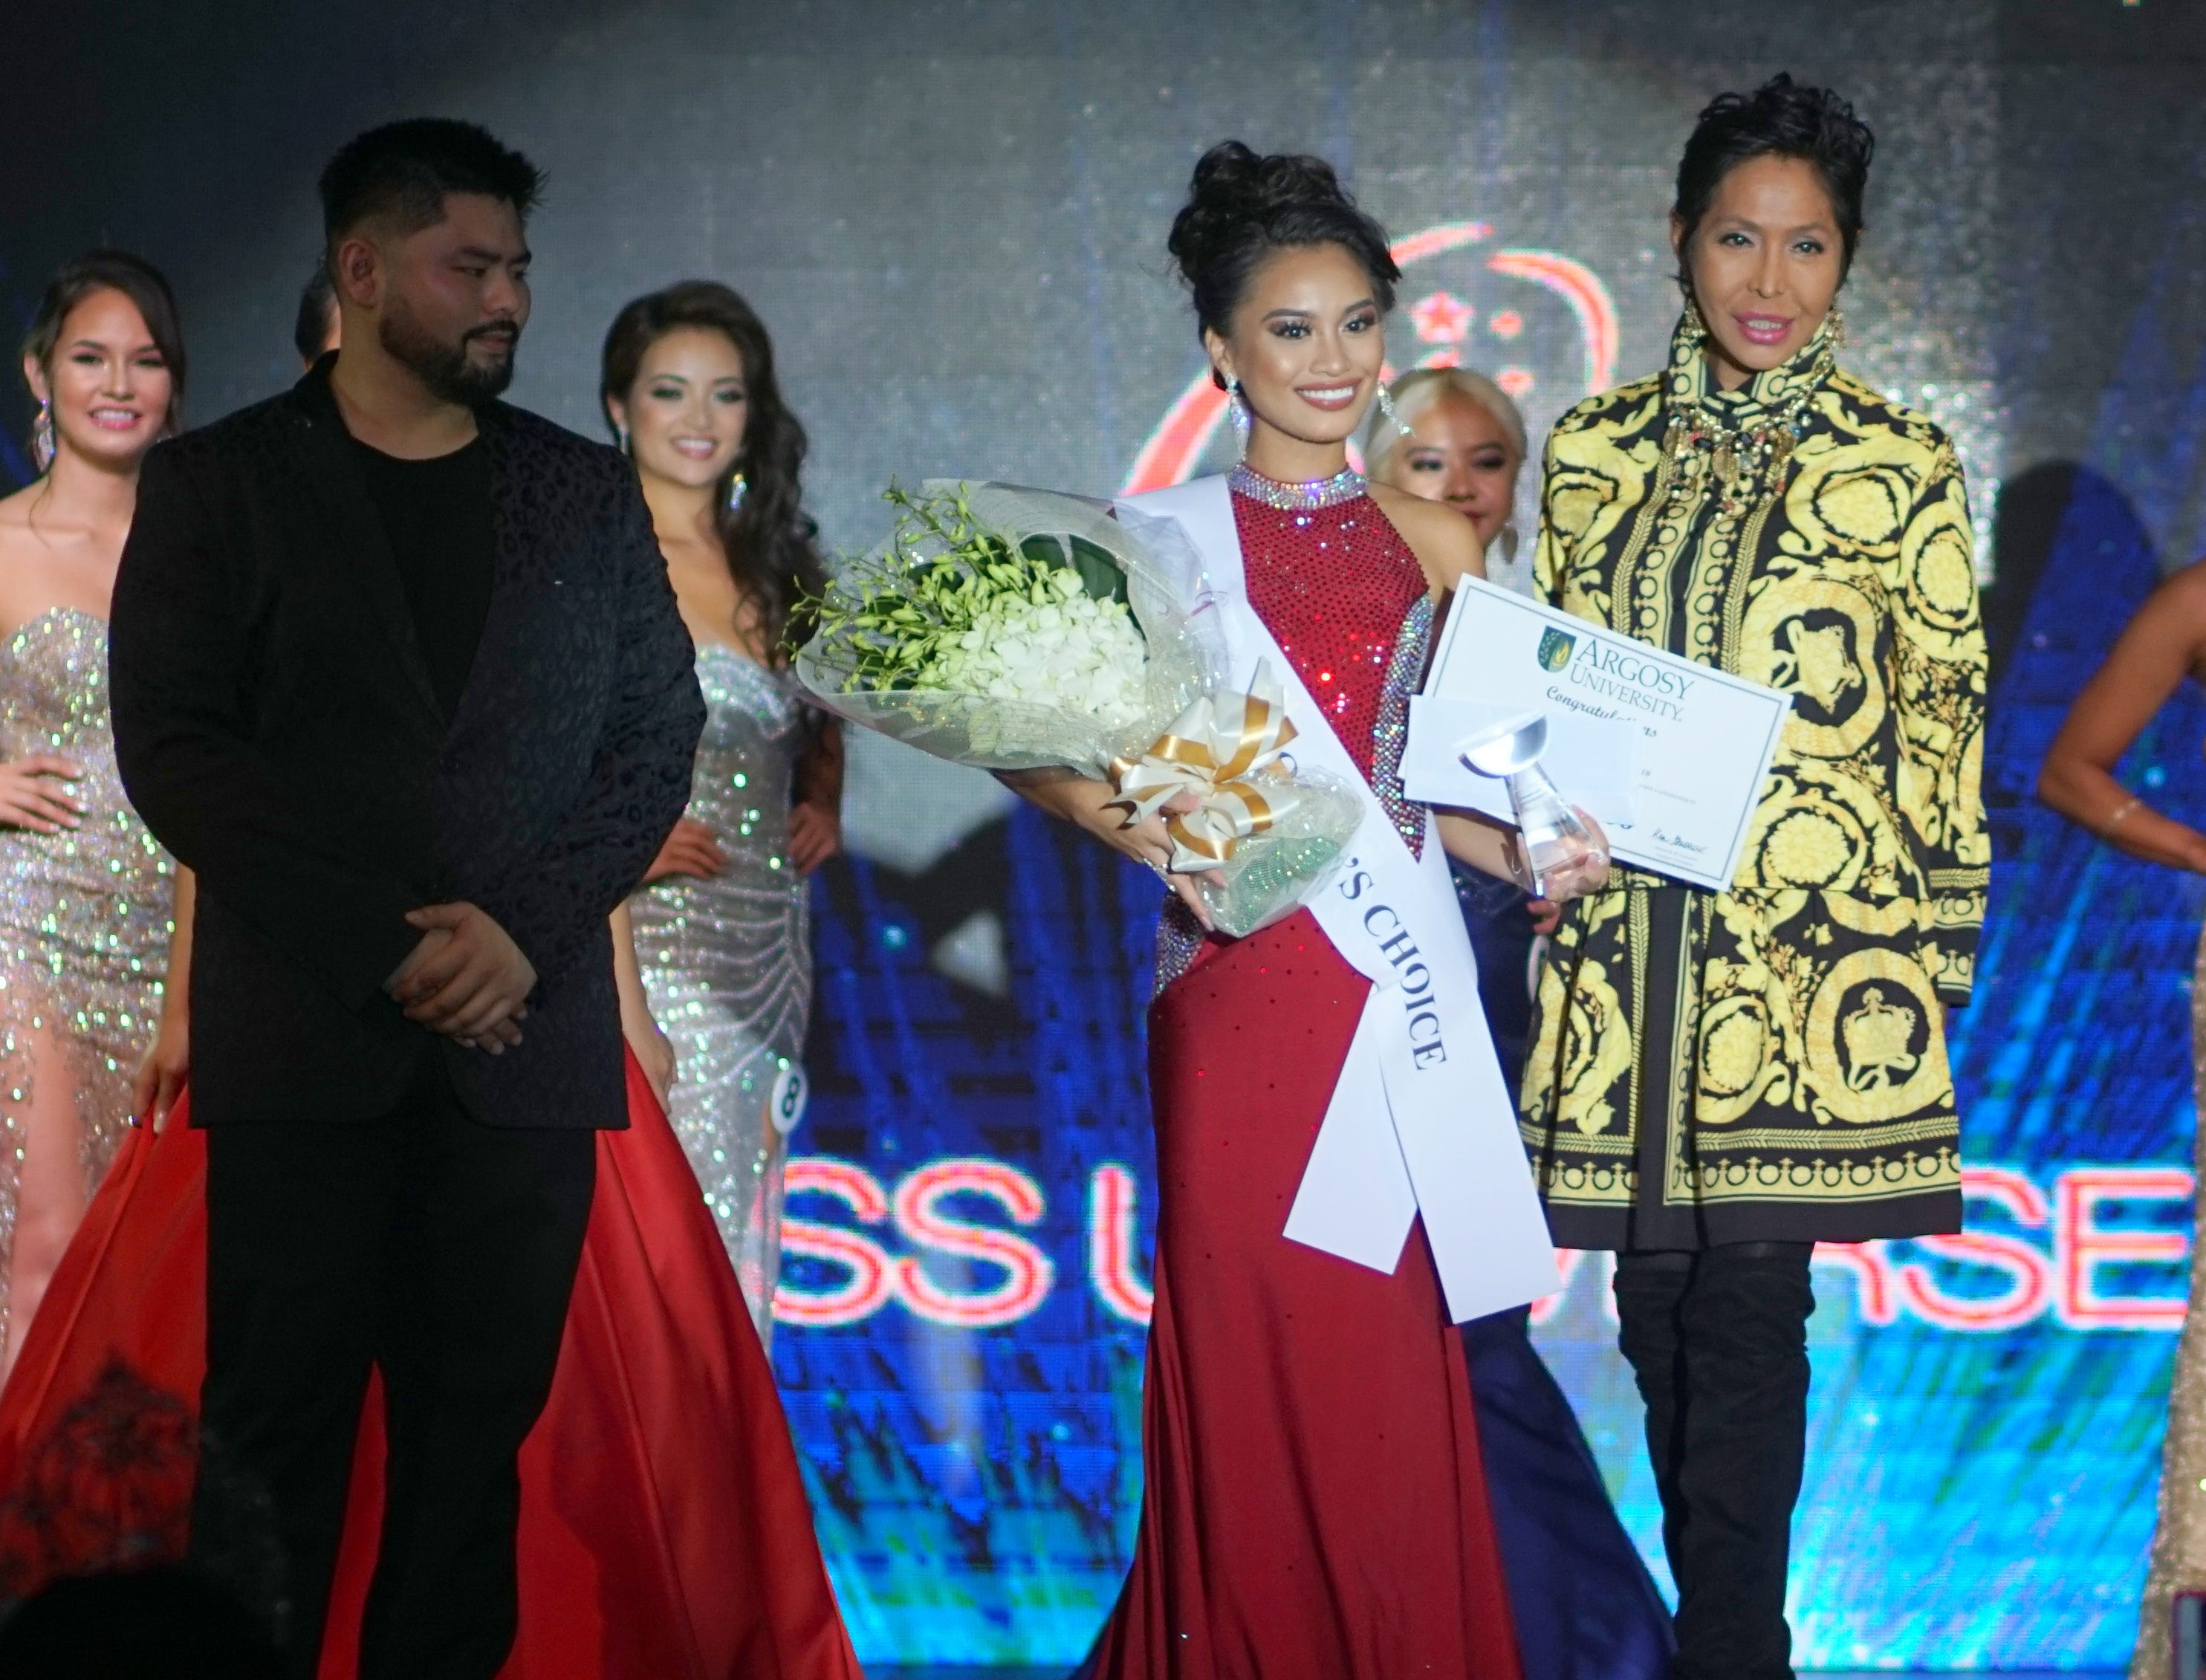 Contestant 9  Celine Nicole Almero Comia wins the Special Cecilia Bamba award during the Miss Universe Guam 2018 pageant held at Sheraton Laguna Guam Resort.